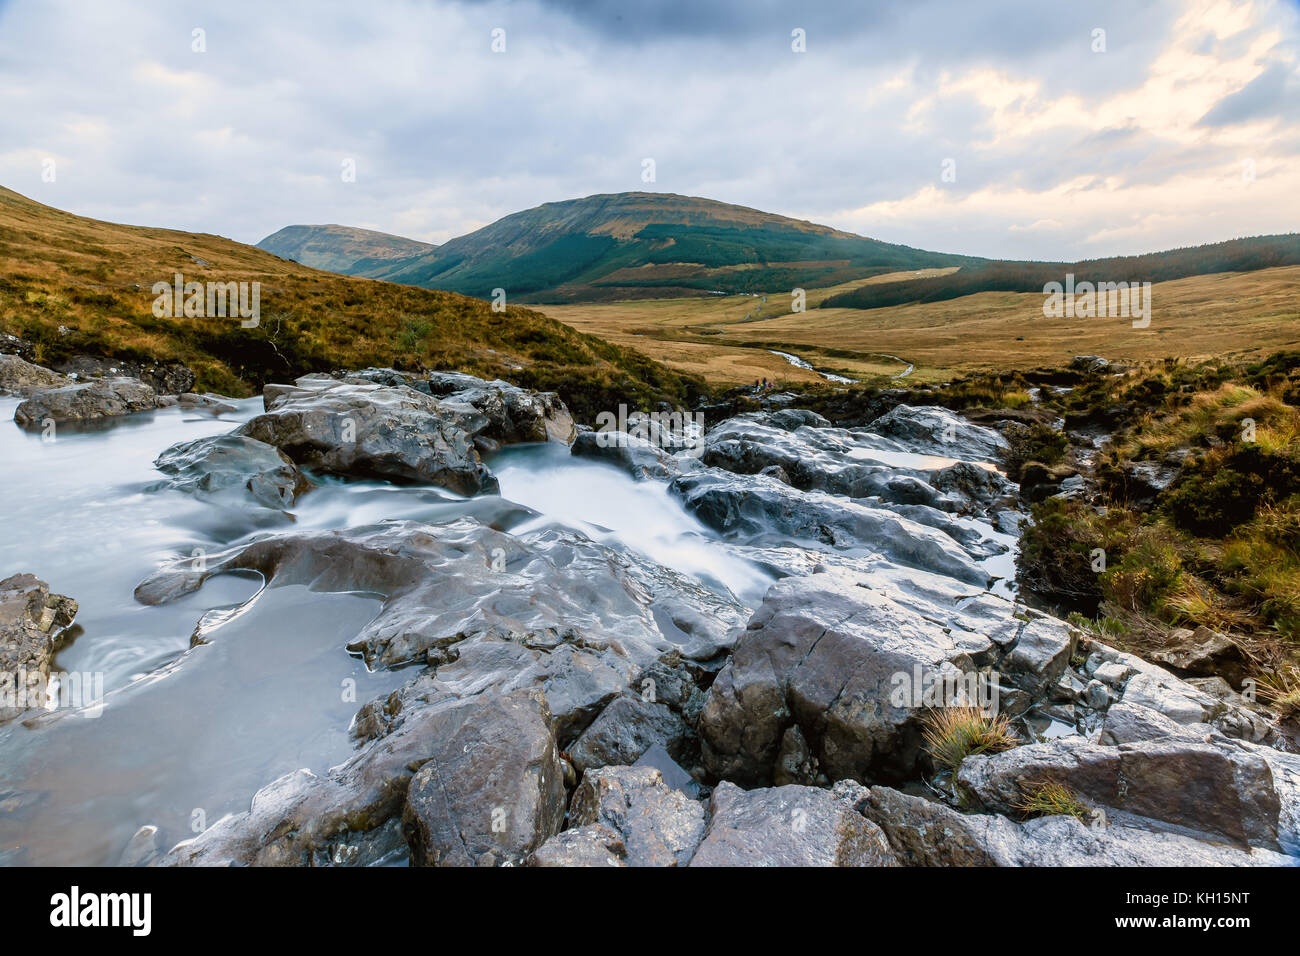 Water flows at the Fairy pools at Isle of Skye - Stock Image